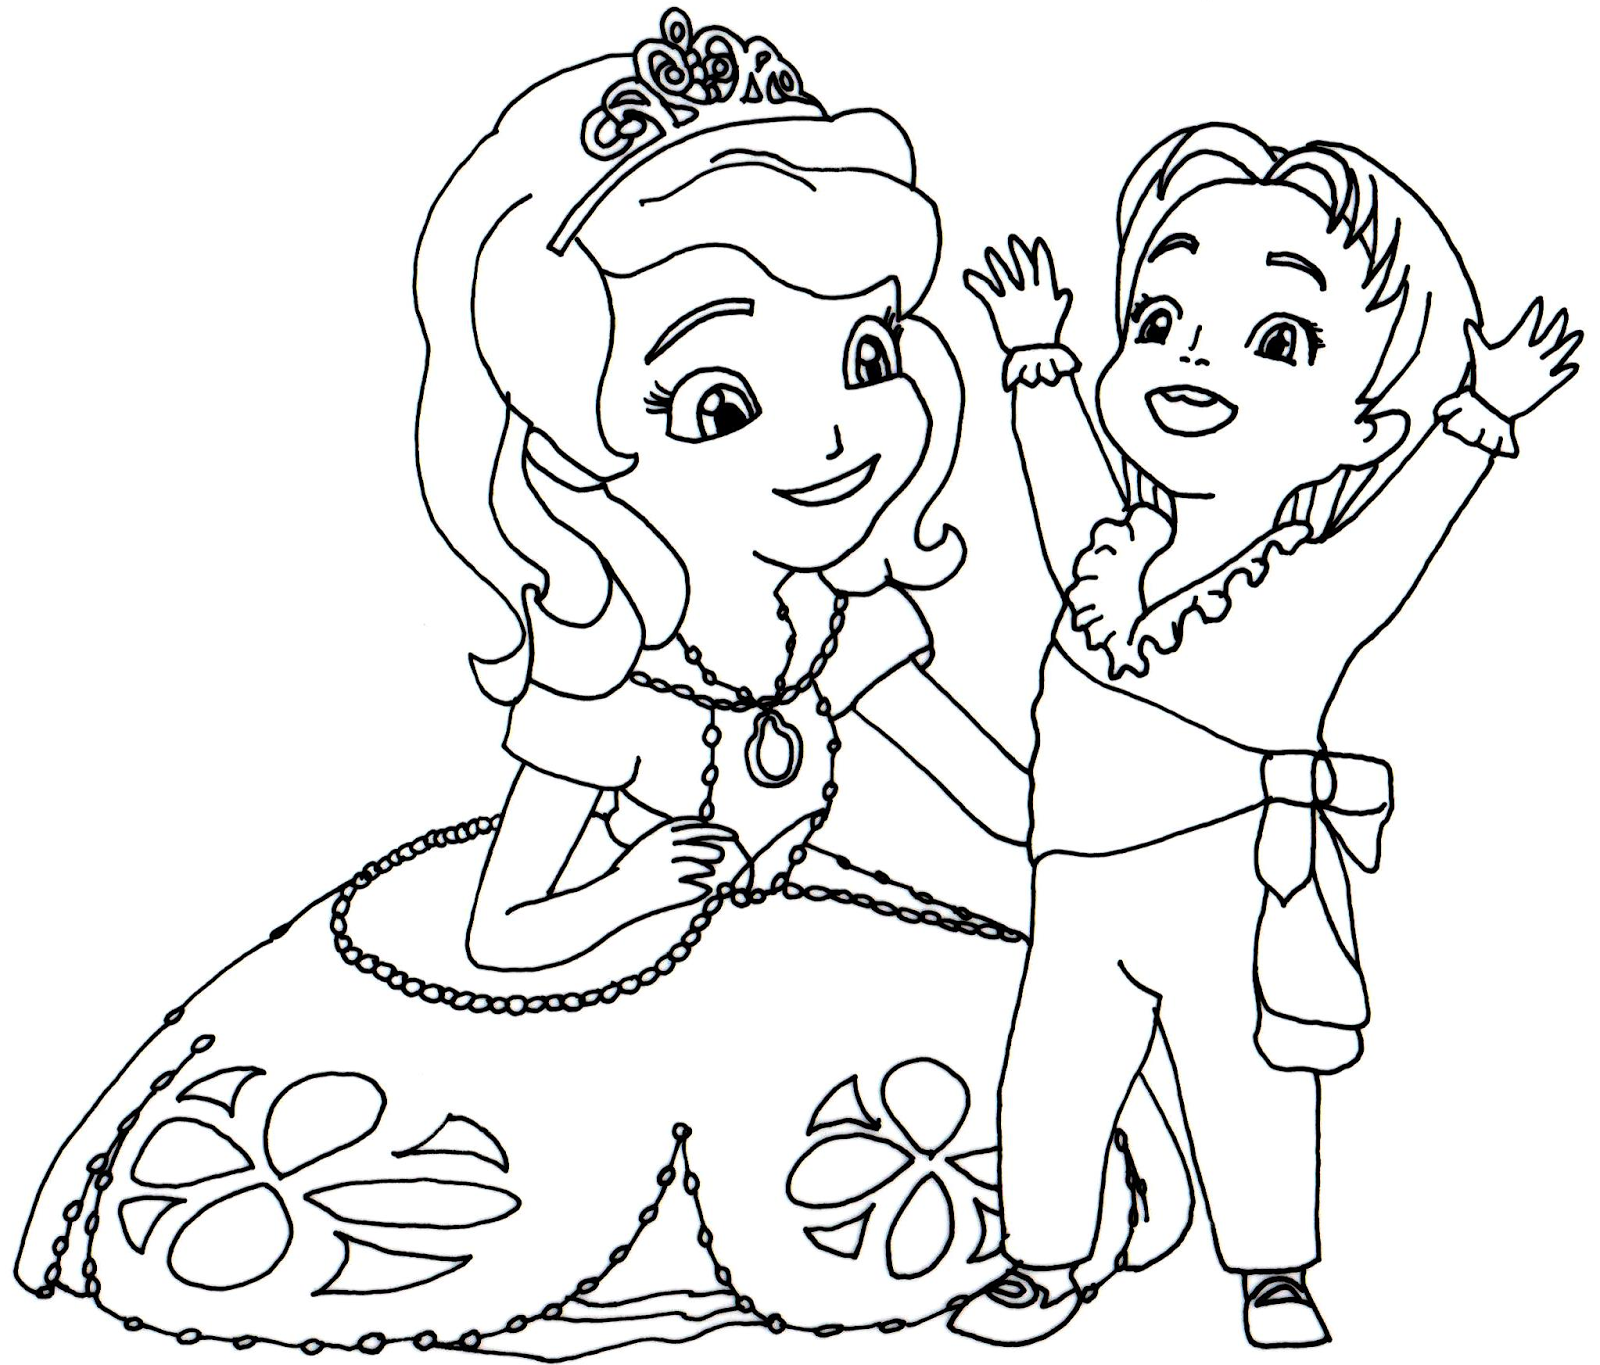 Sofia-the-First-Coloring-1